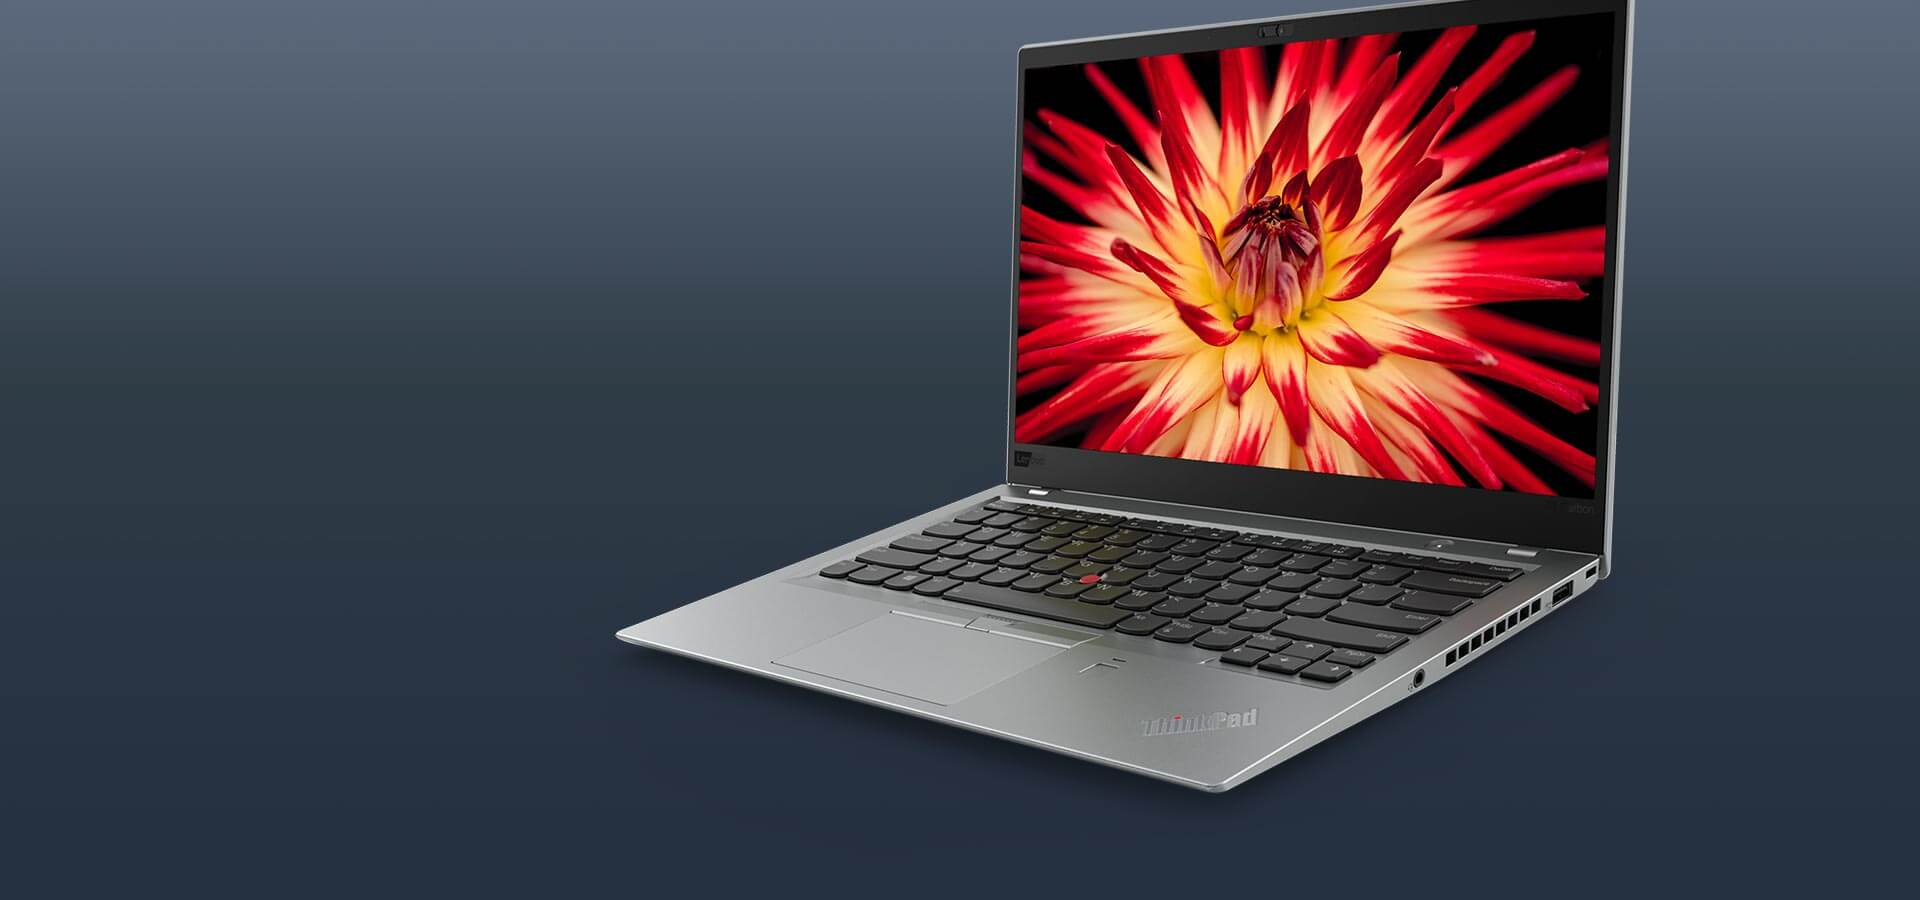 thinkpad-x1-hero2-carbon.jpg